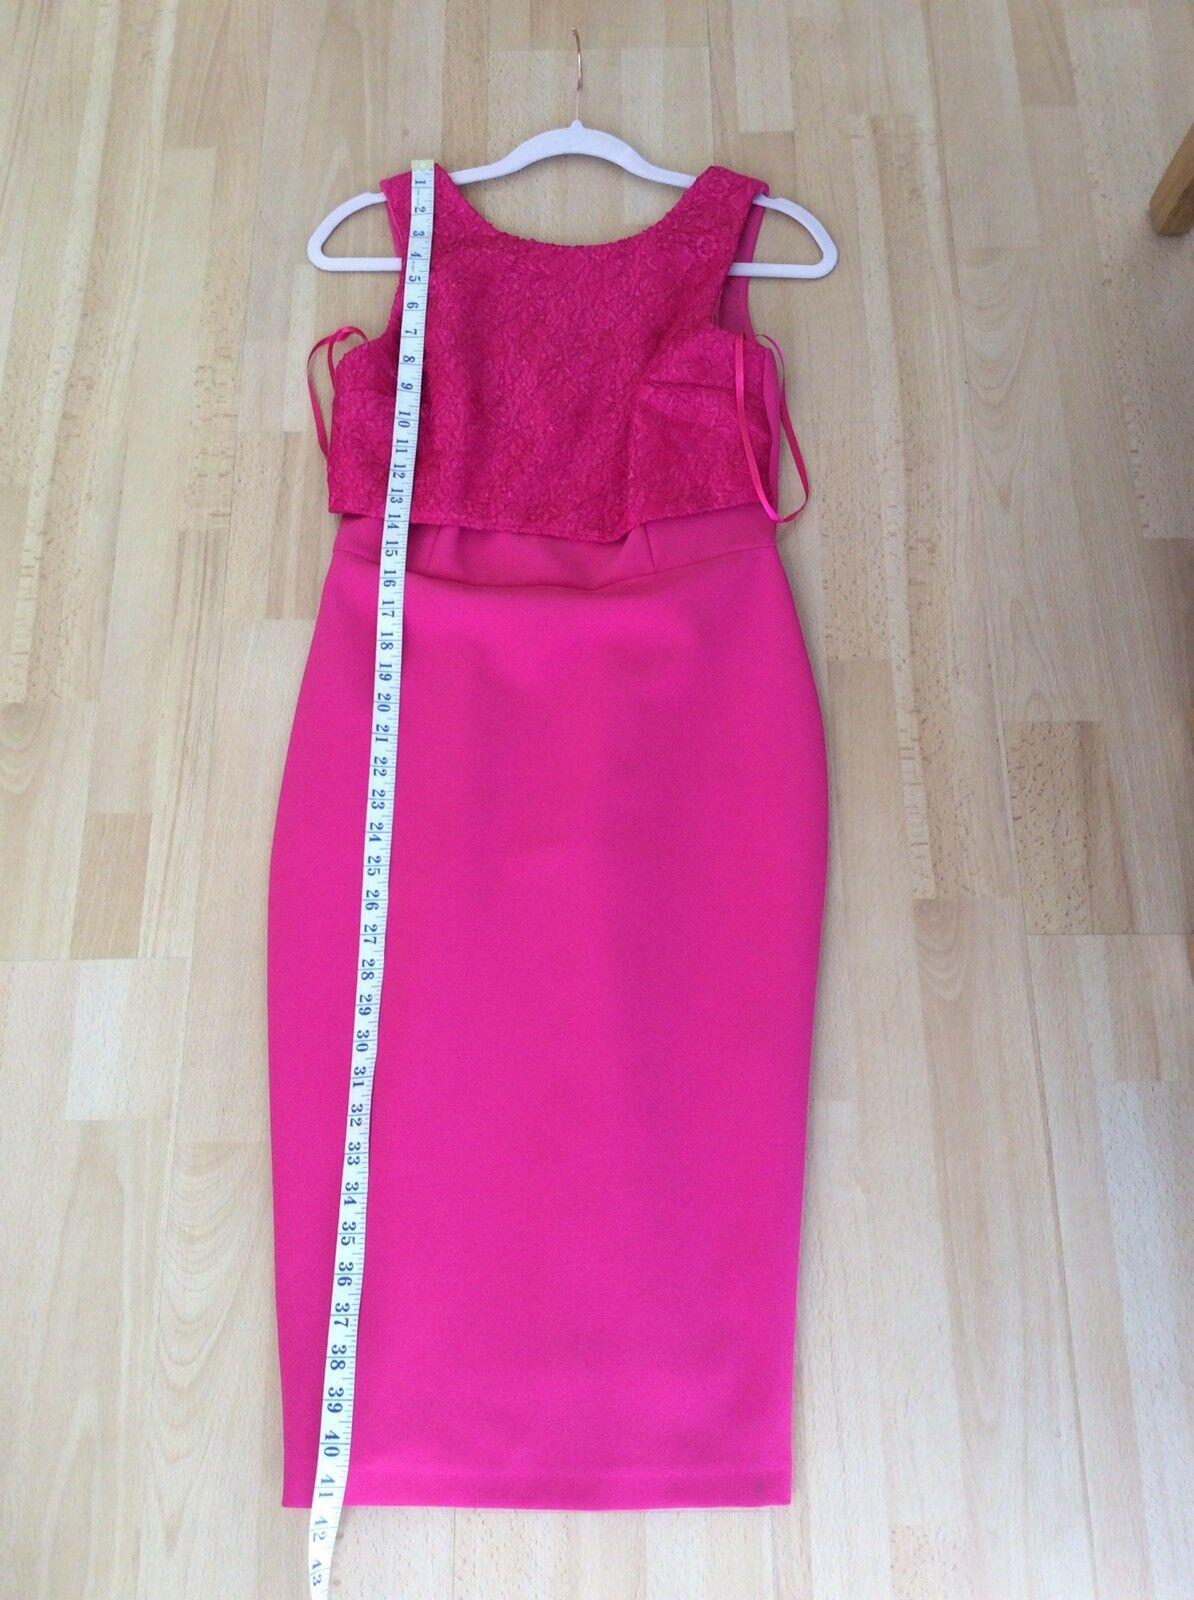 Coast Stunning Cerise Pink Dress Size 10